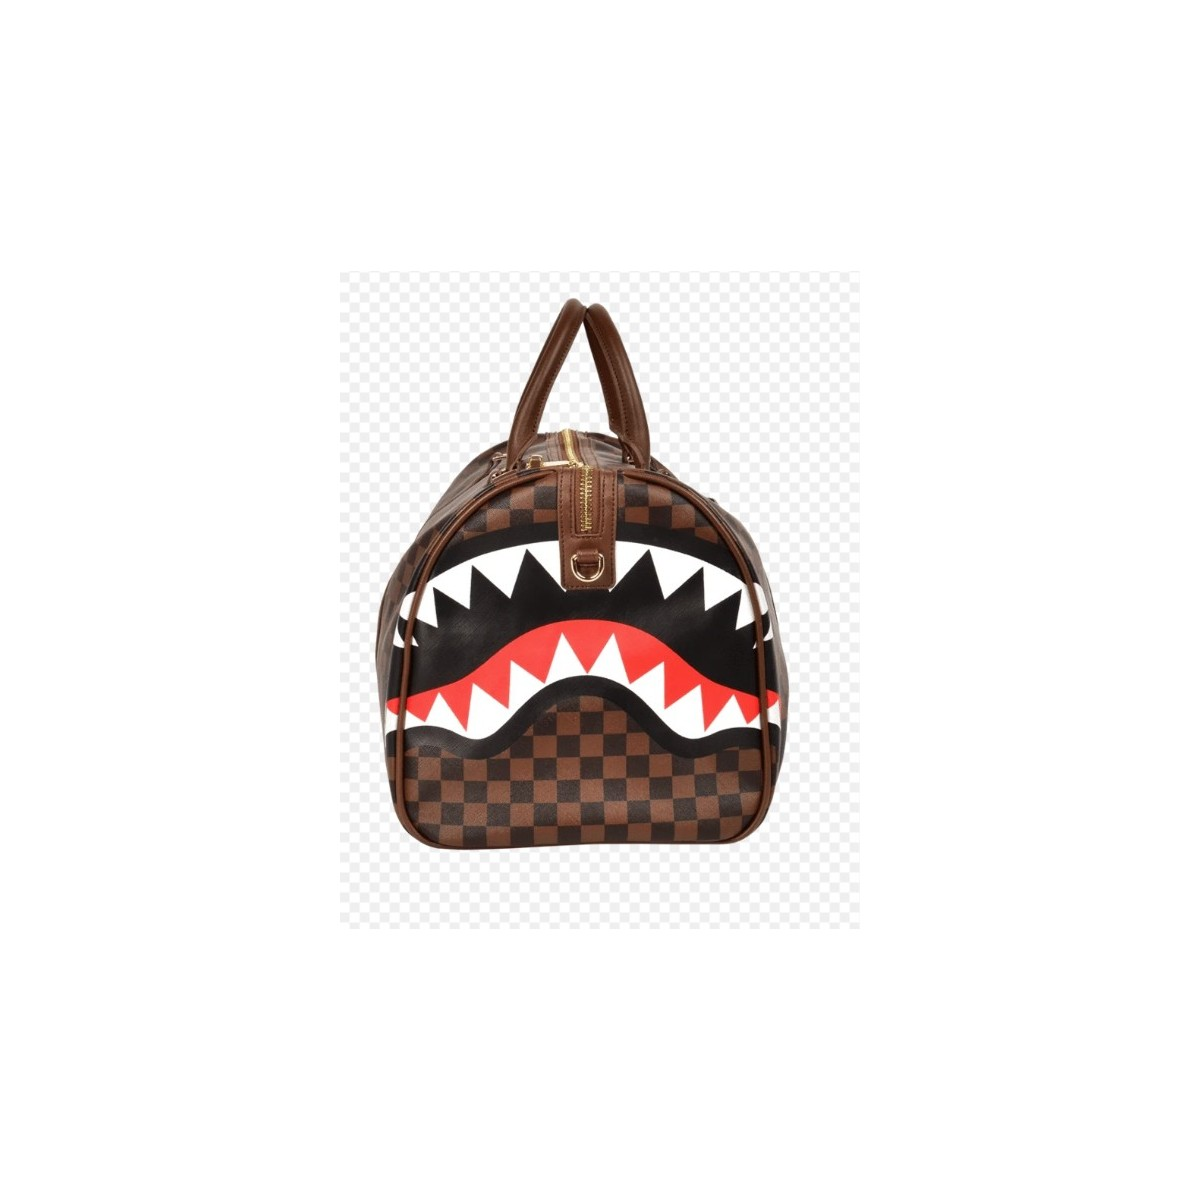 Borsa - Sharks in paris mii duffle